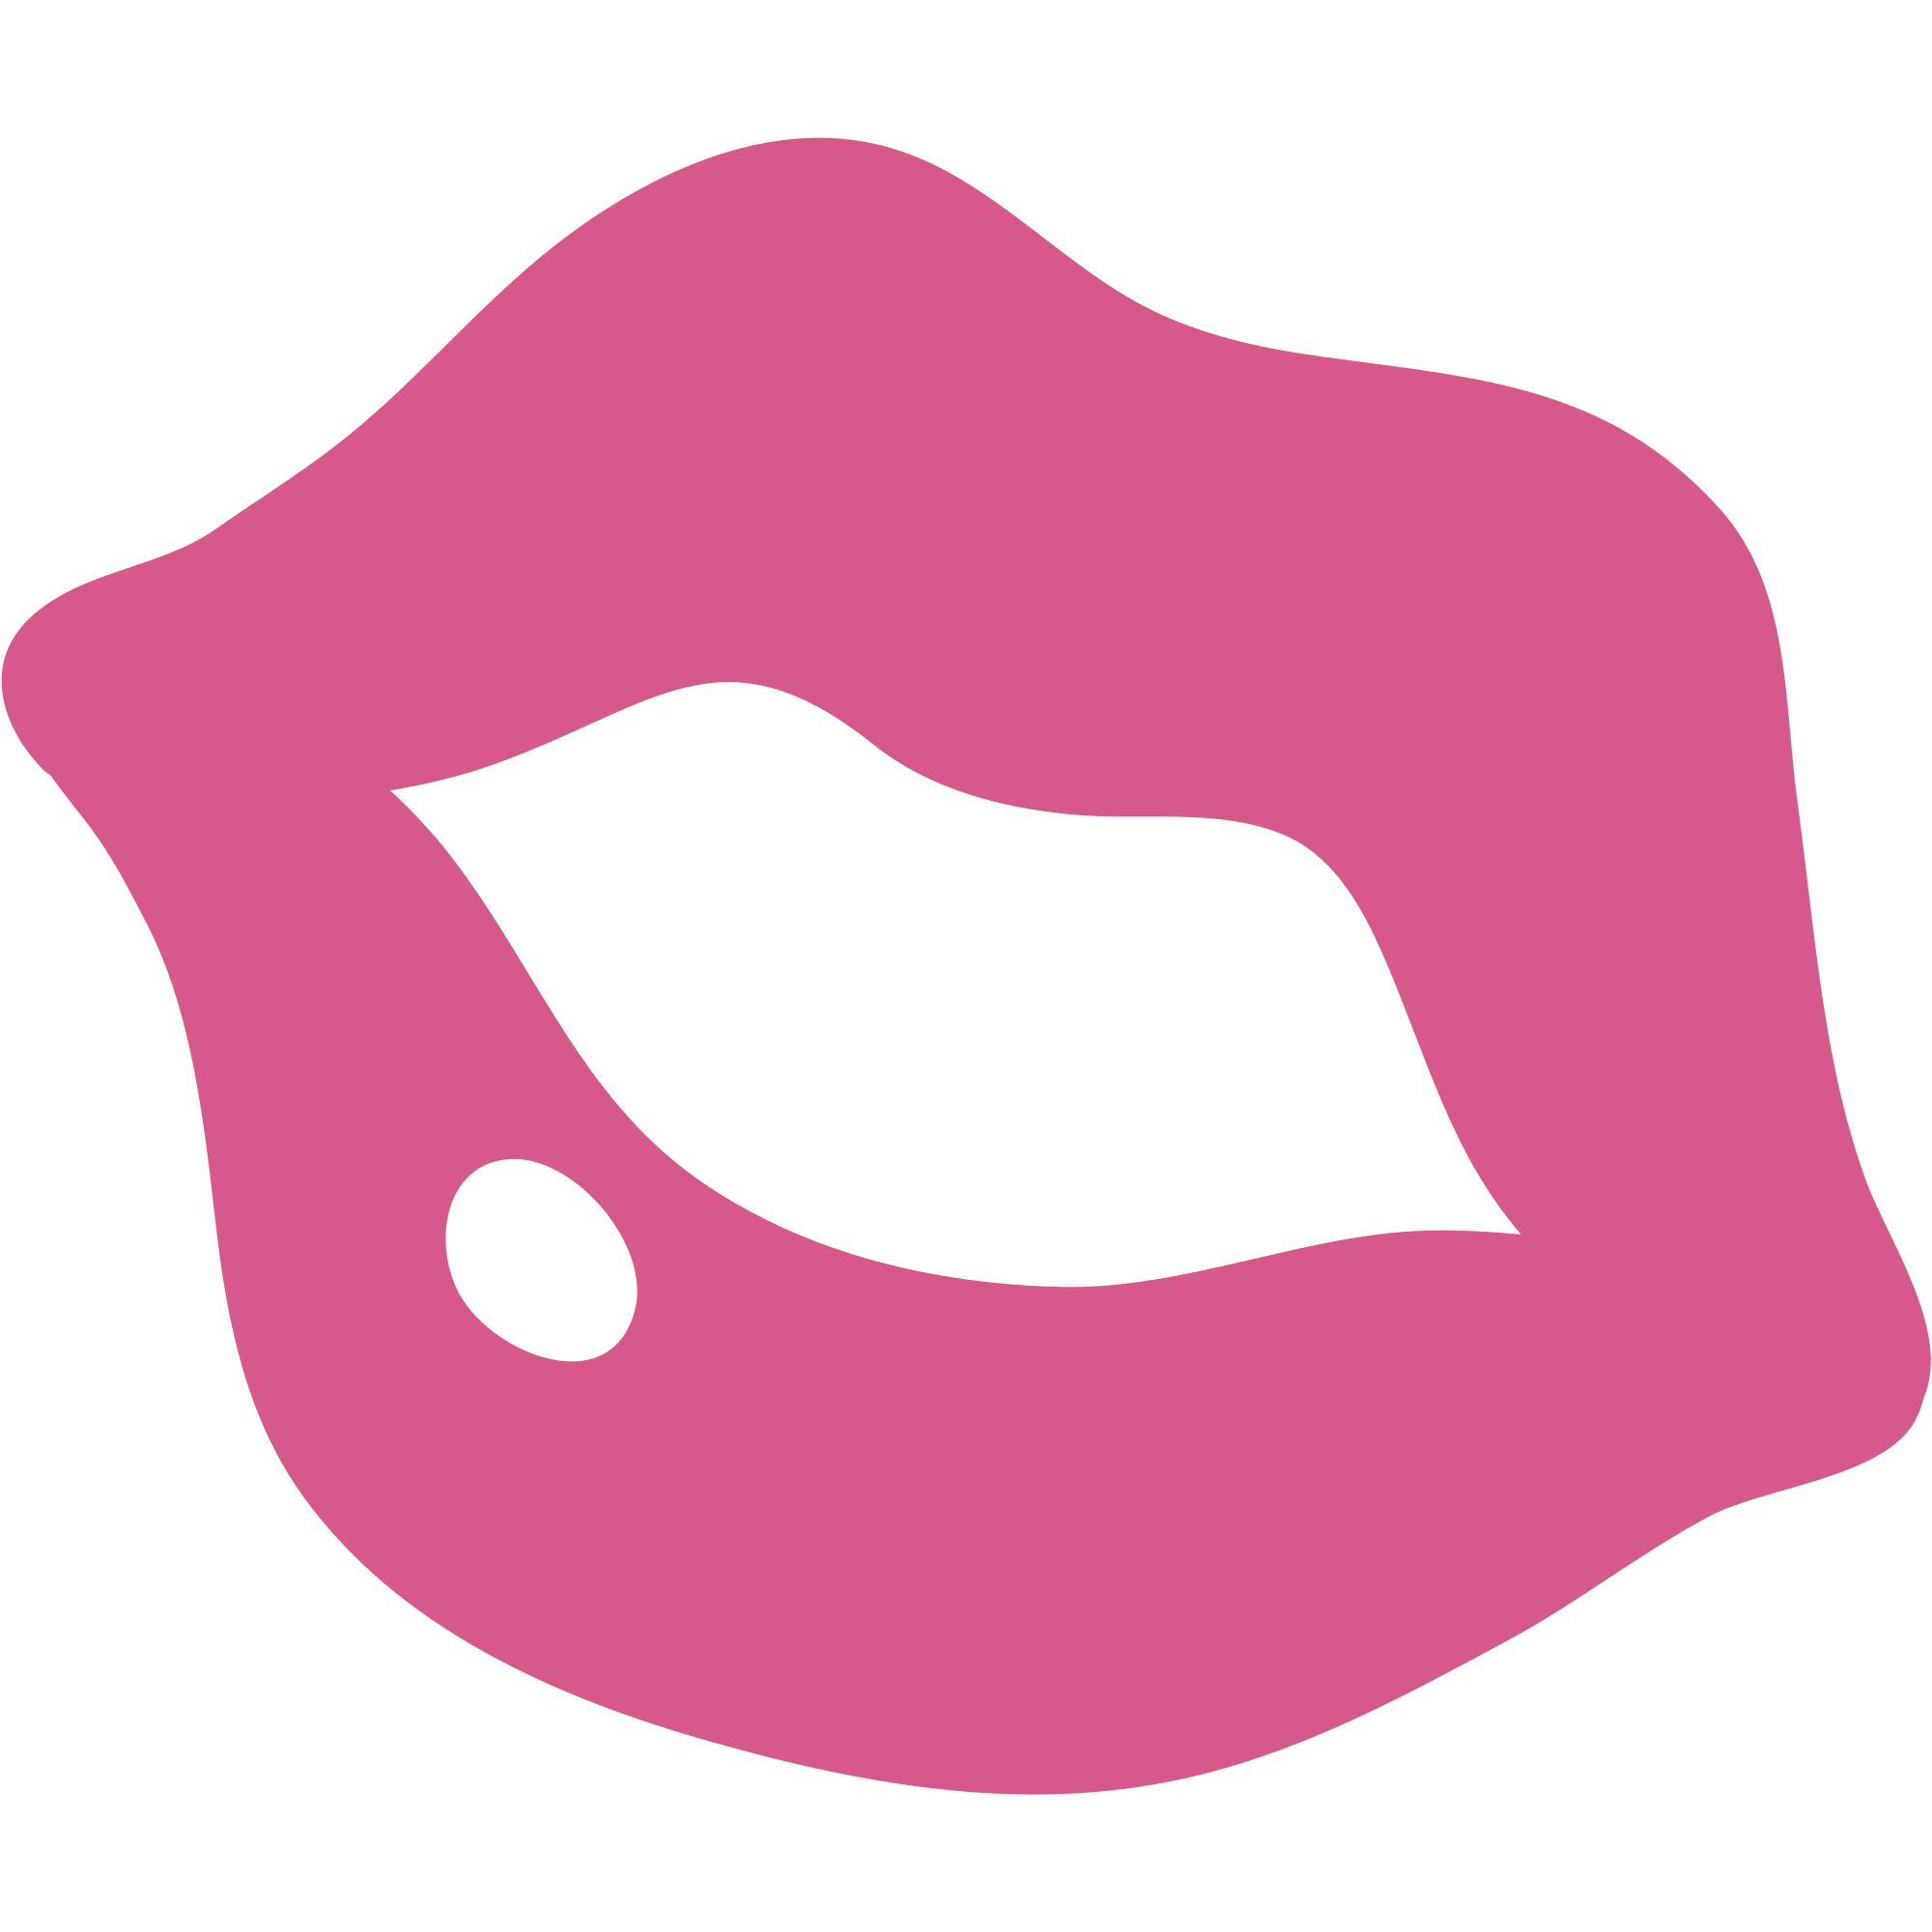 Emoticon Pink Kiss transparent PNG.